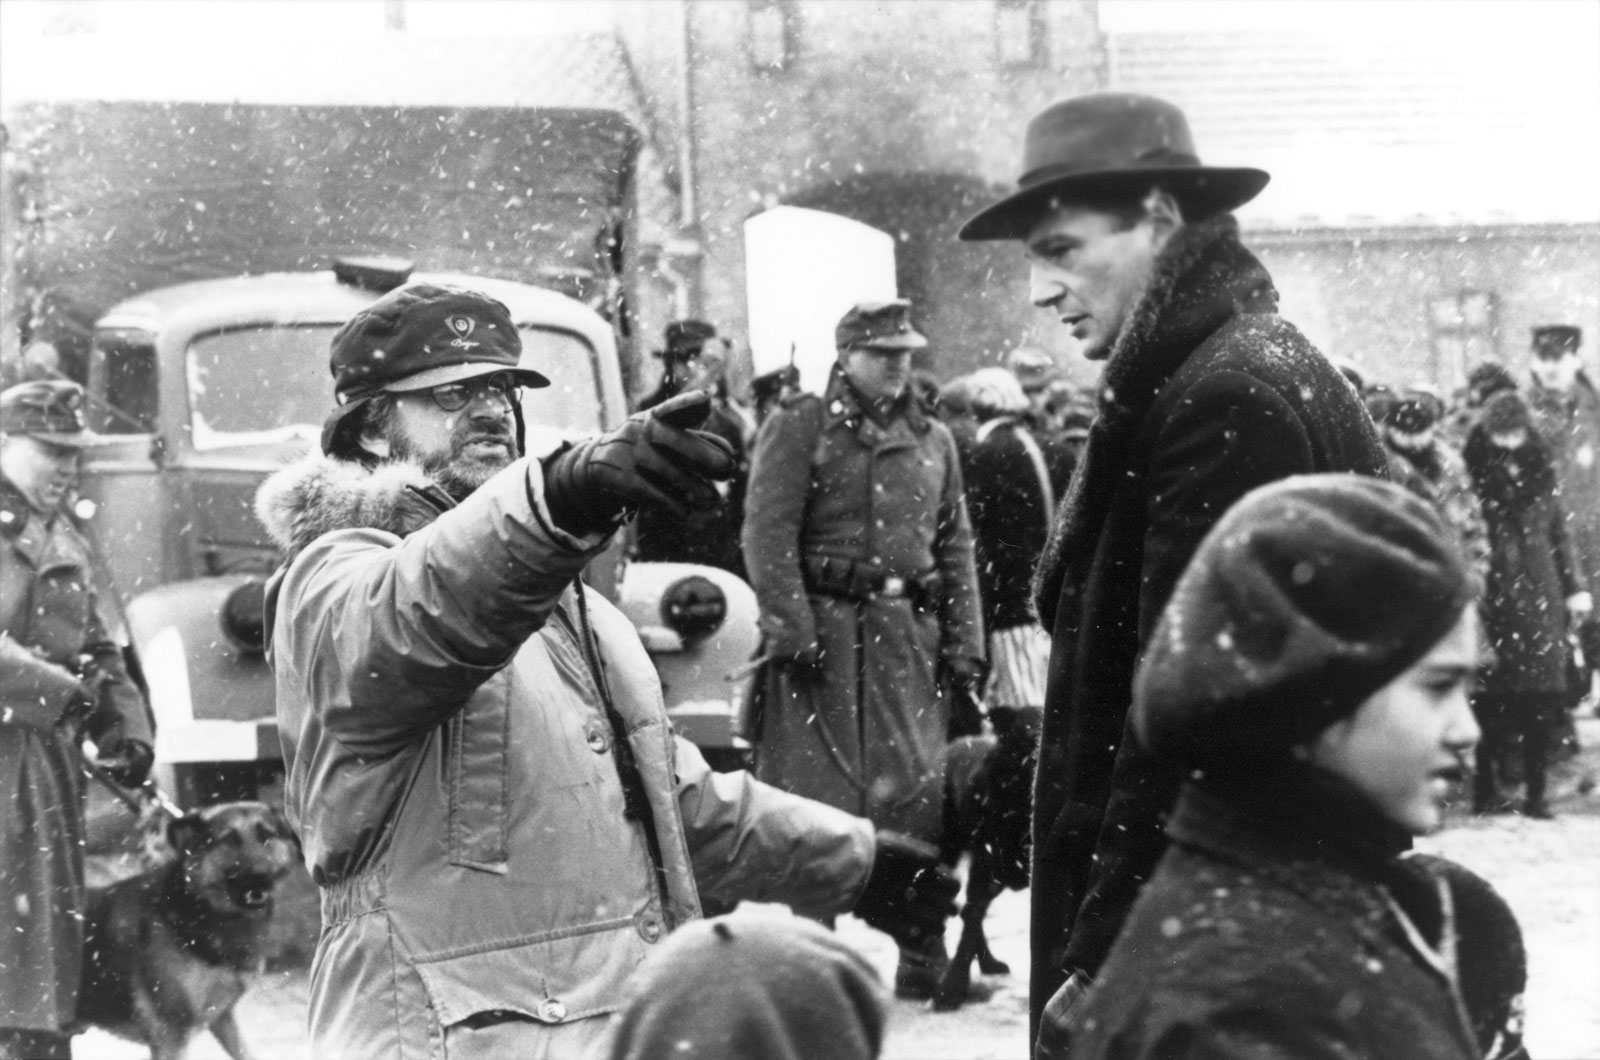 the absolute good of oskar schindlers work in schindlers list an epic historical drama film by steve A historical drama detailing the life of oskar  subject matter of the film schindler's list is technically  you work for, the list is an absolute good.